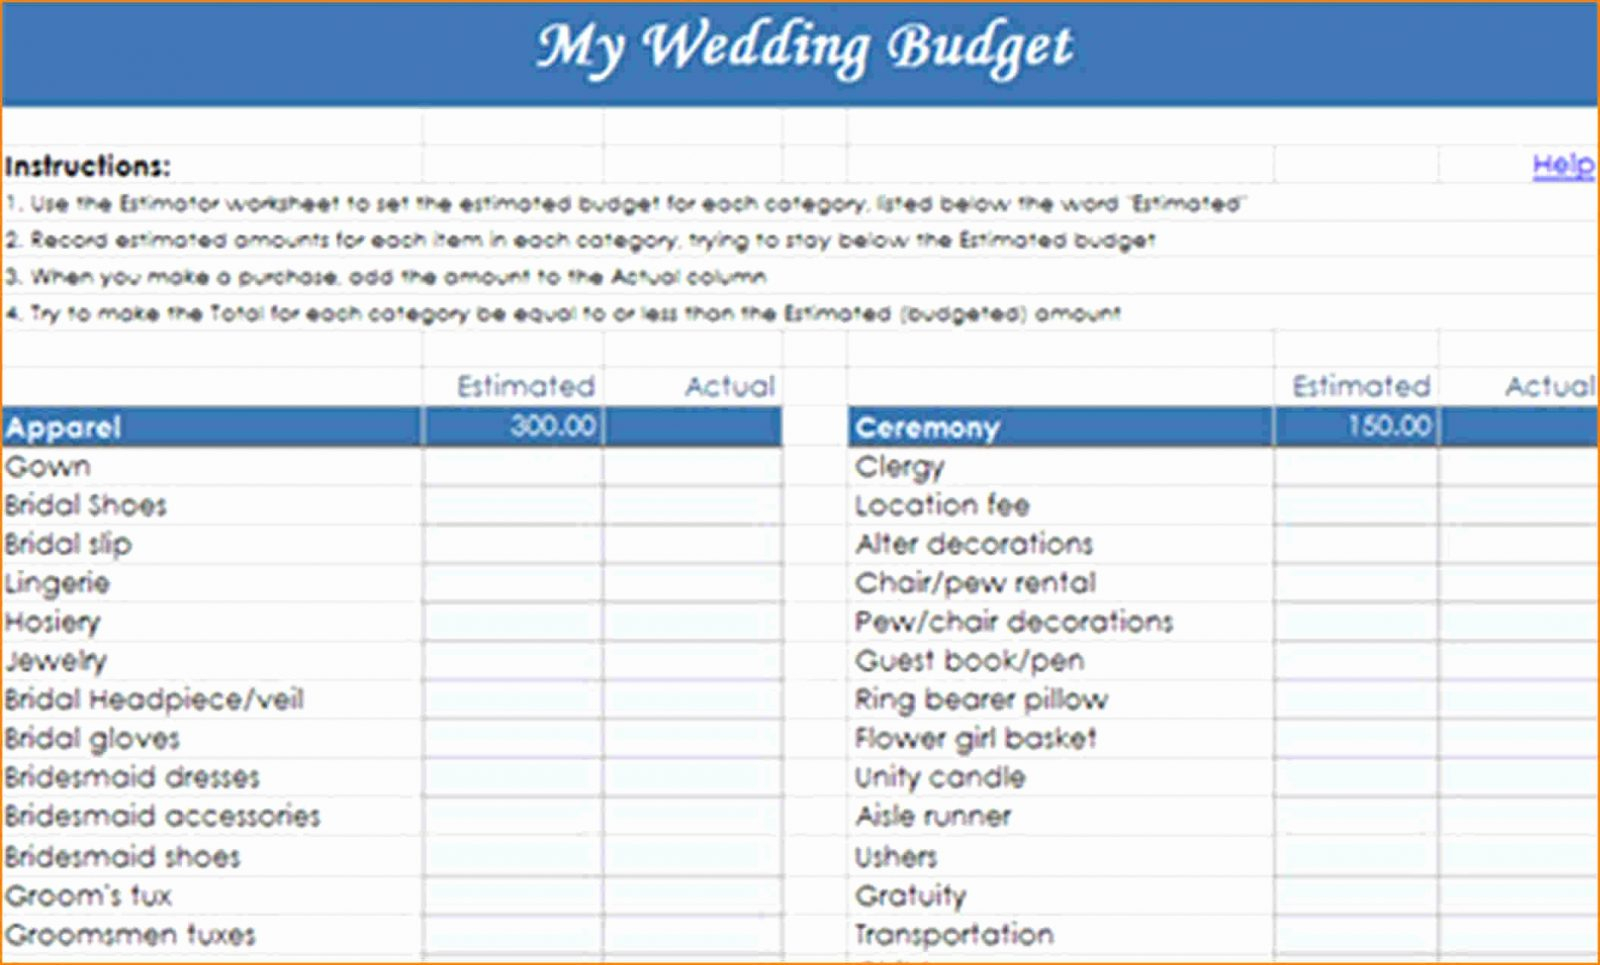 Detailed Wedding Budget Spreadsheet Spreadshee